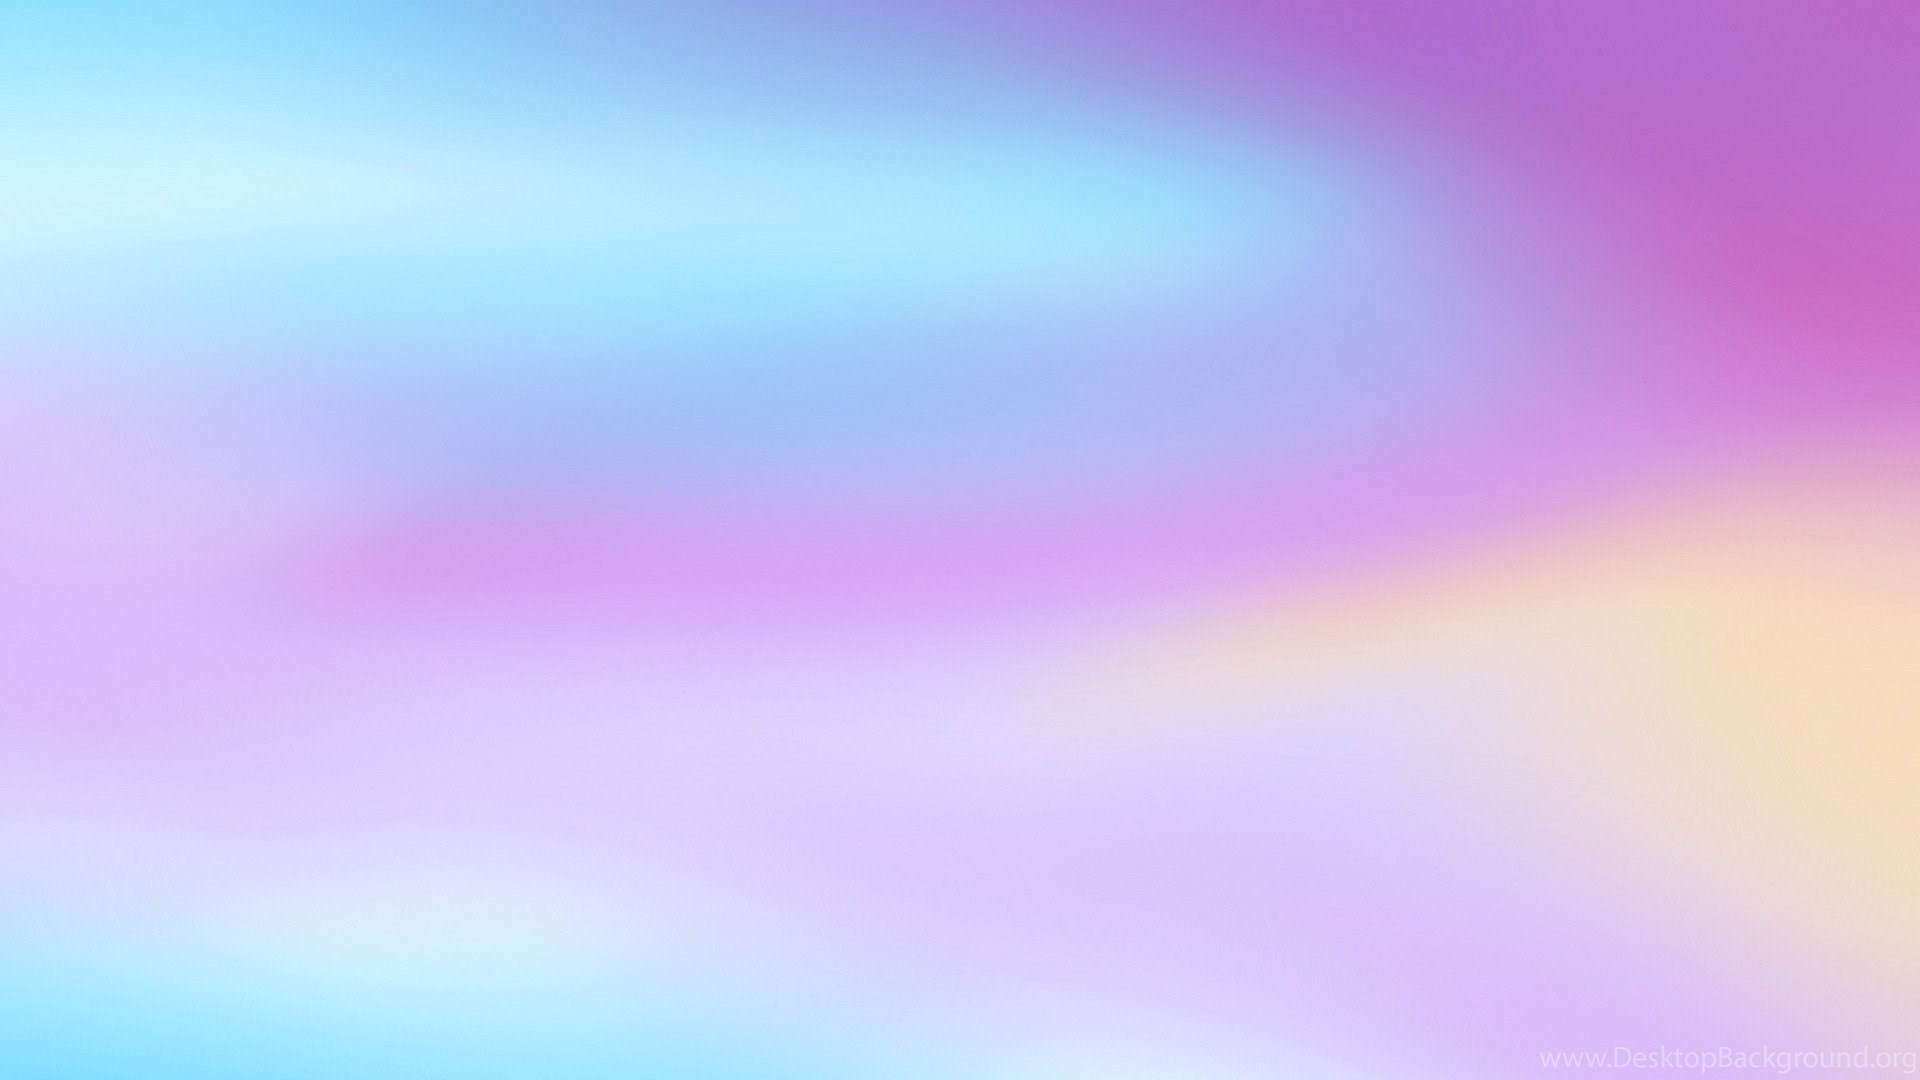 Pastel colors wallpapers 06 hd desktop wallpapers desktop background - Pastel background hd ...